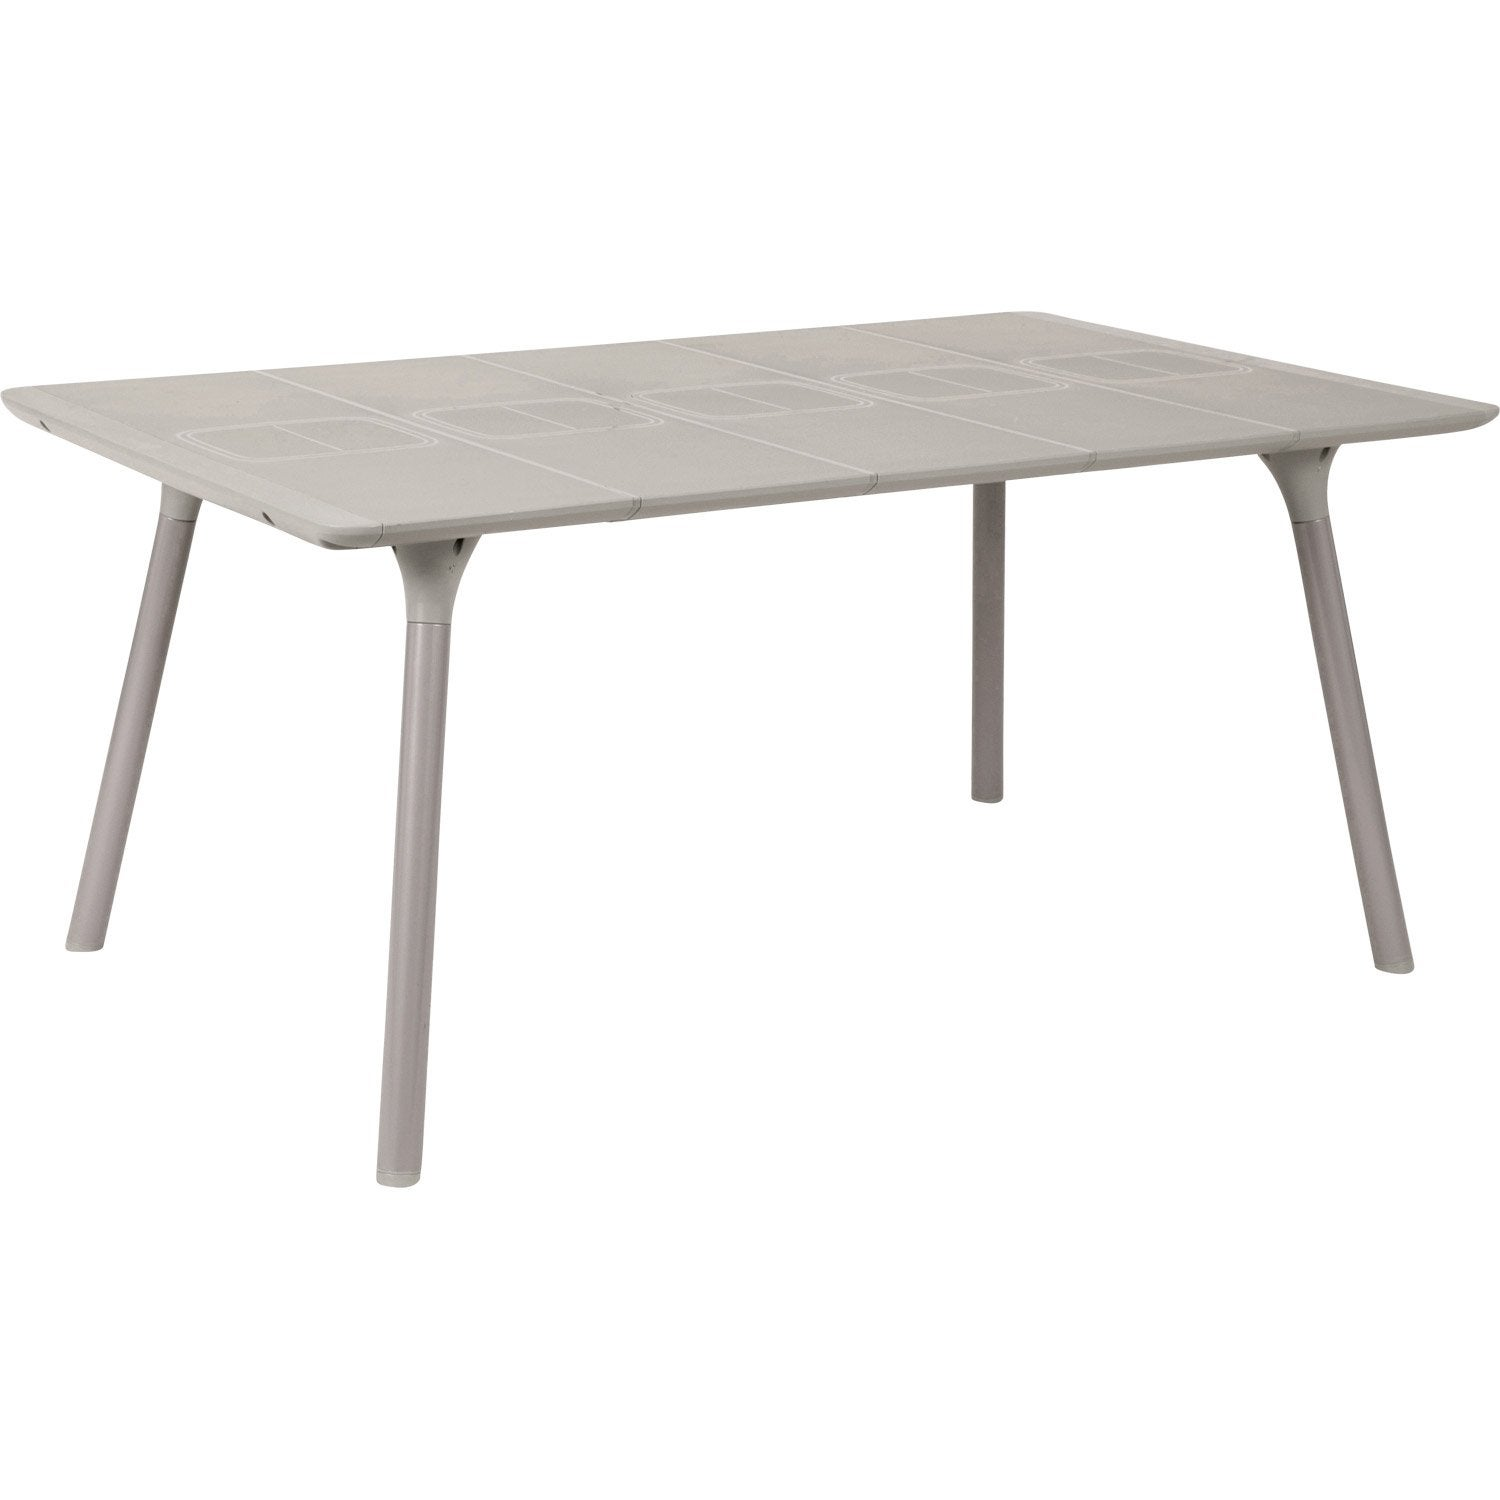 Table de jardin naterial playmood rectangulaire lin 6 personnes leroy merlin - Table de cuisson leroy merlin ...